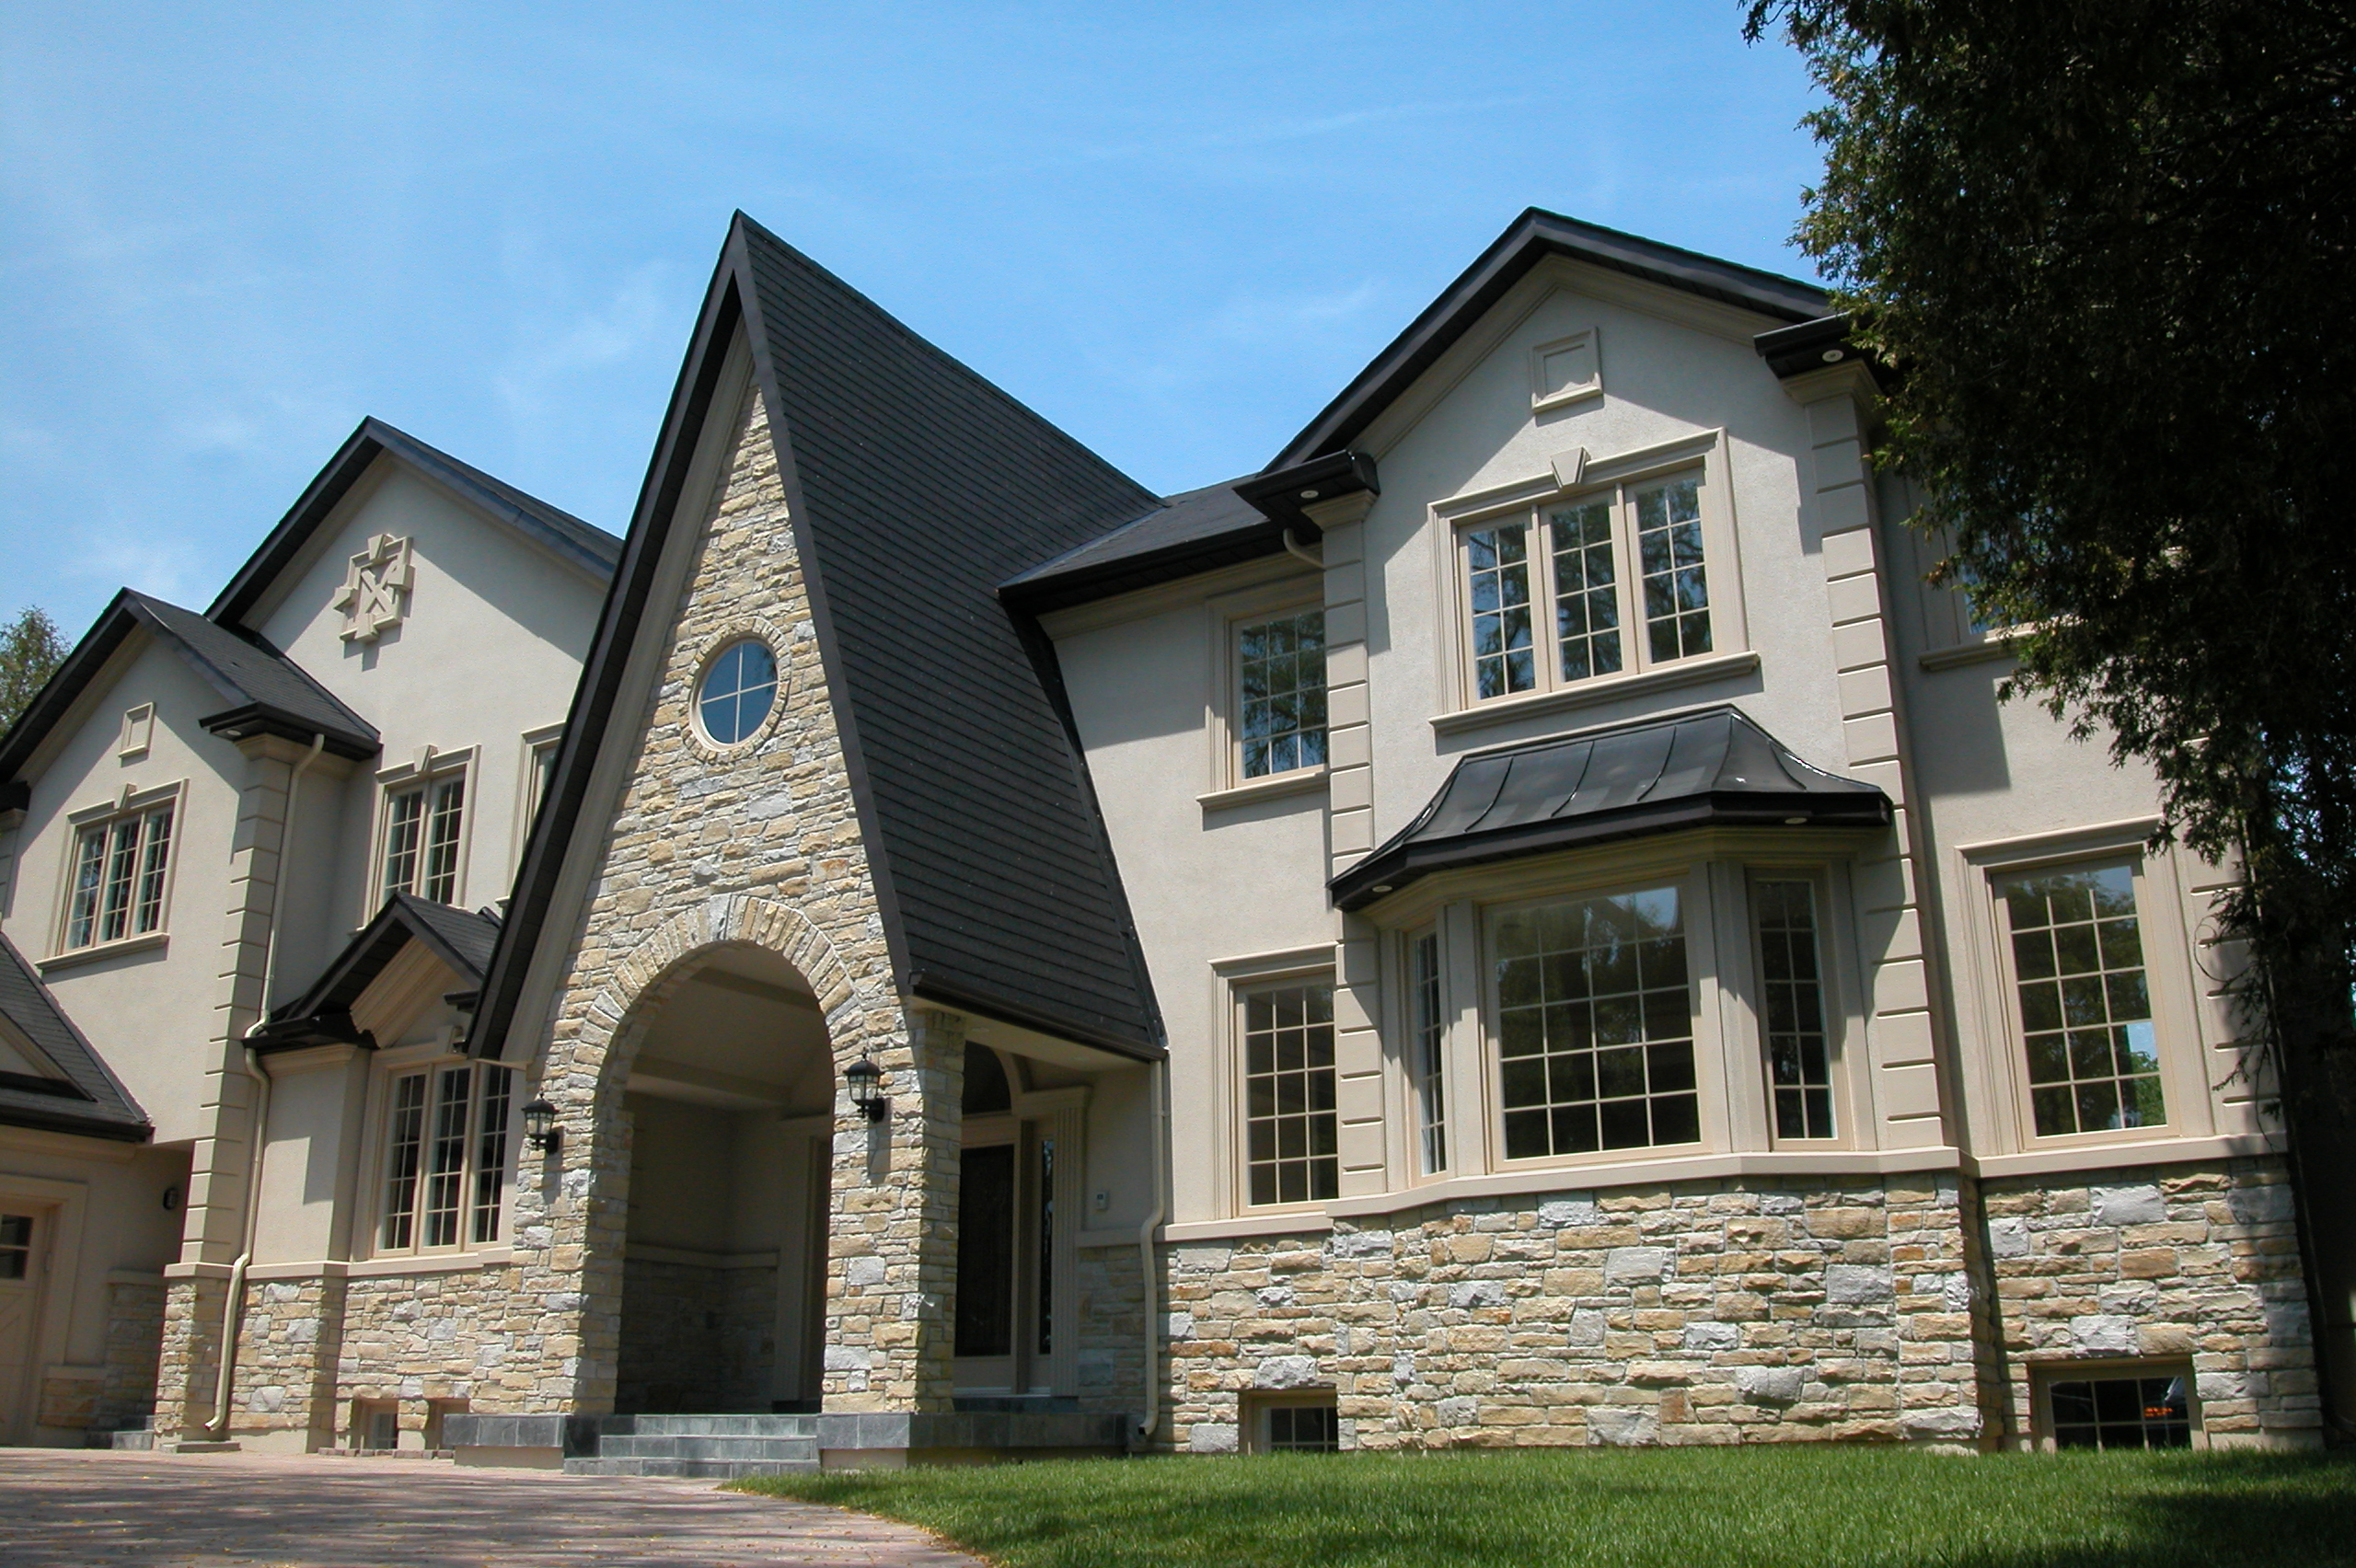 6 atlantis exterior on pinterest james hardie stone exterior and stucco exterior - Houses natural stone facades ...